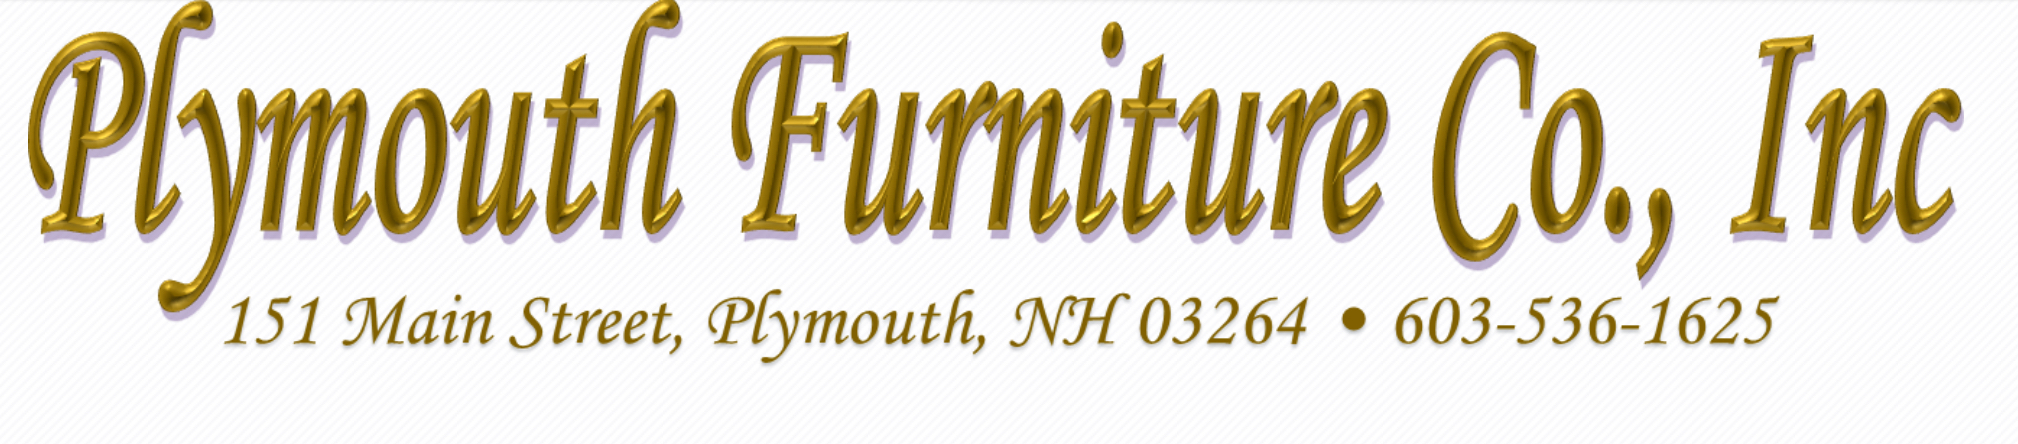 Plymouth Furniture Co.